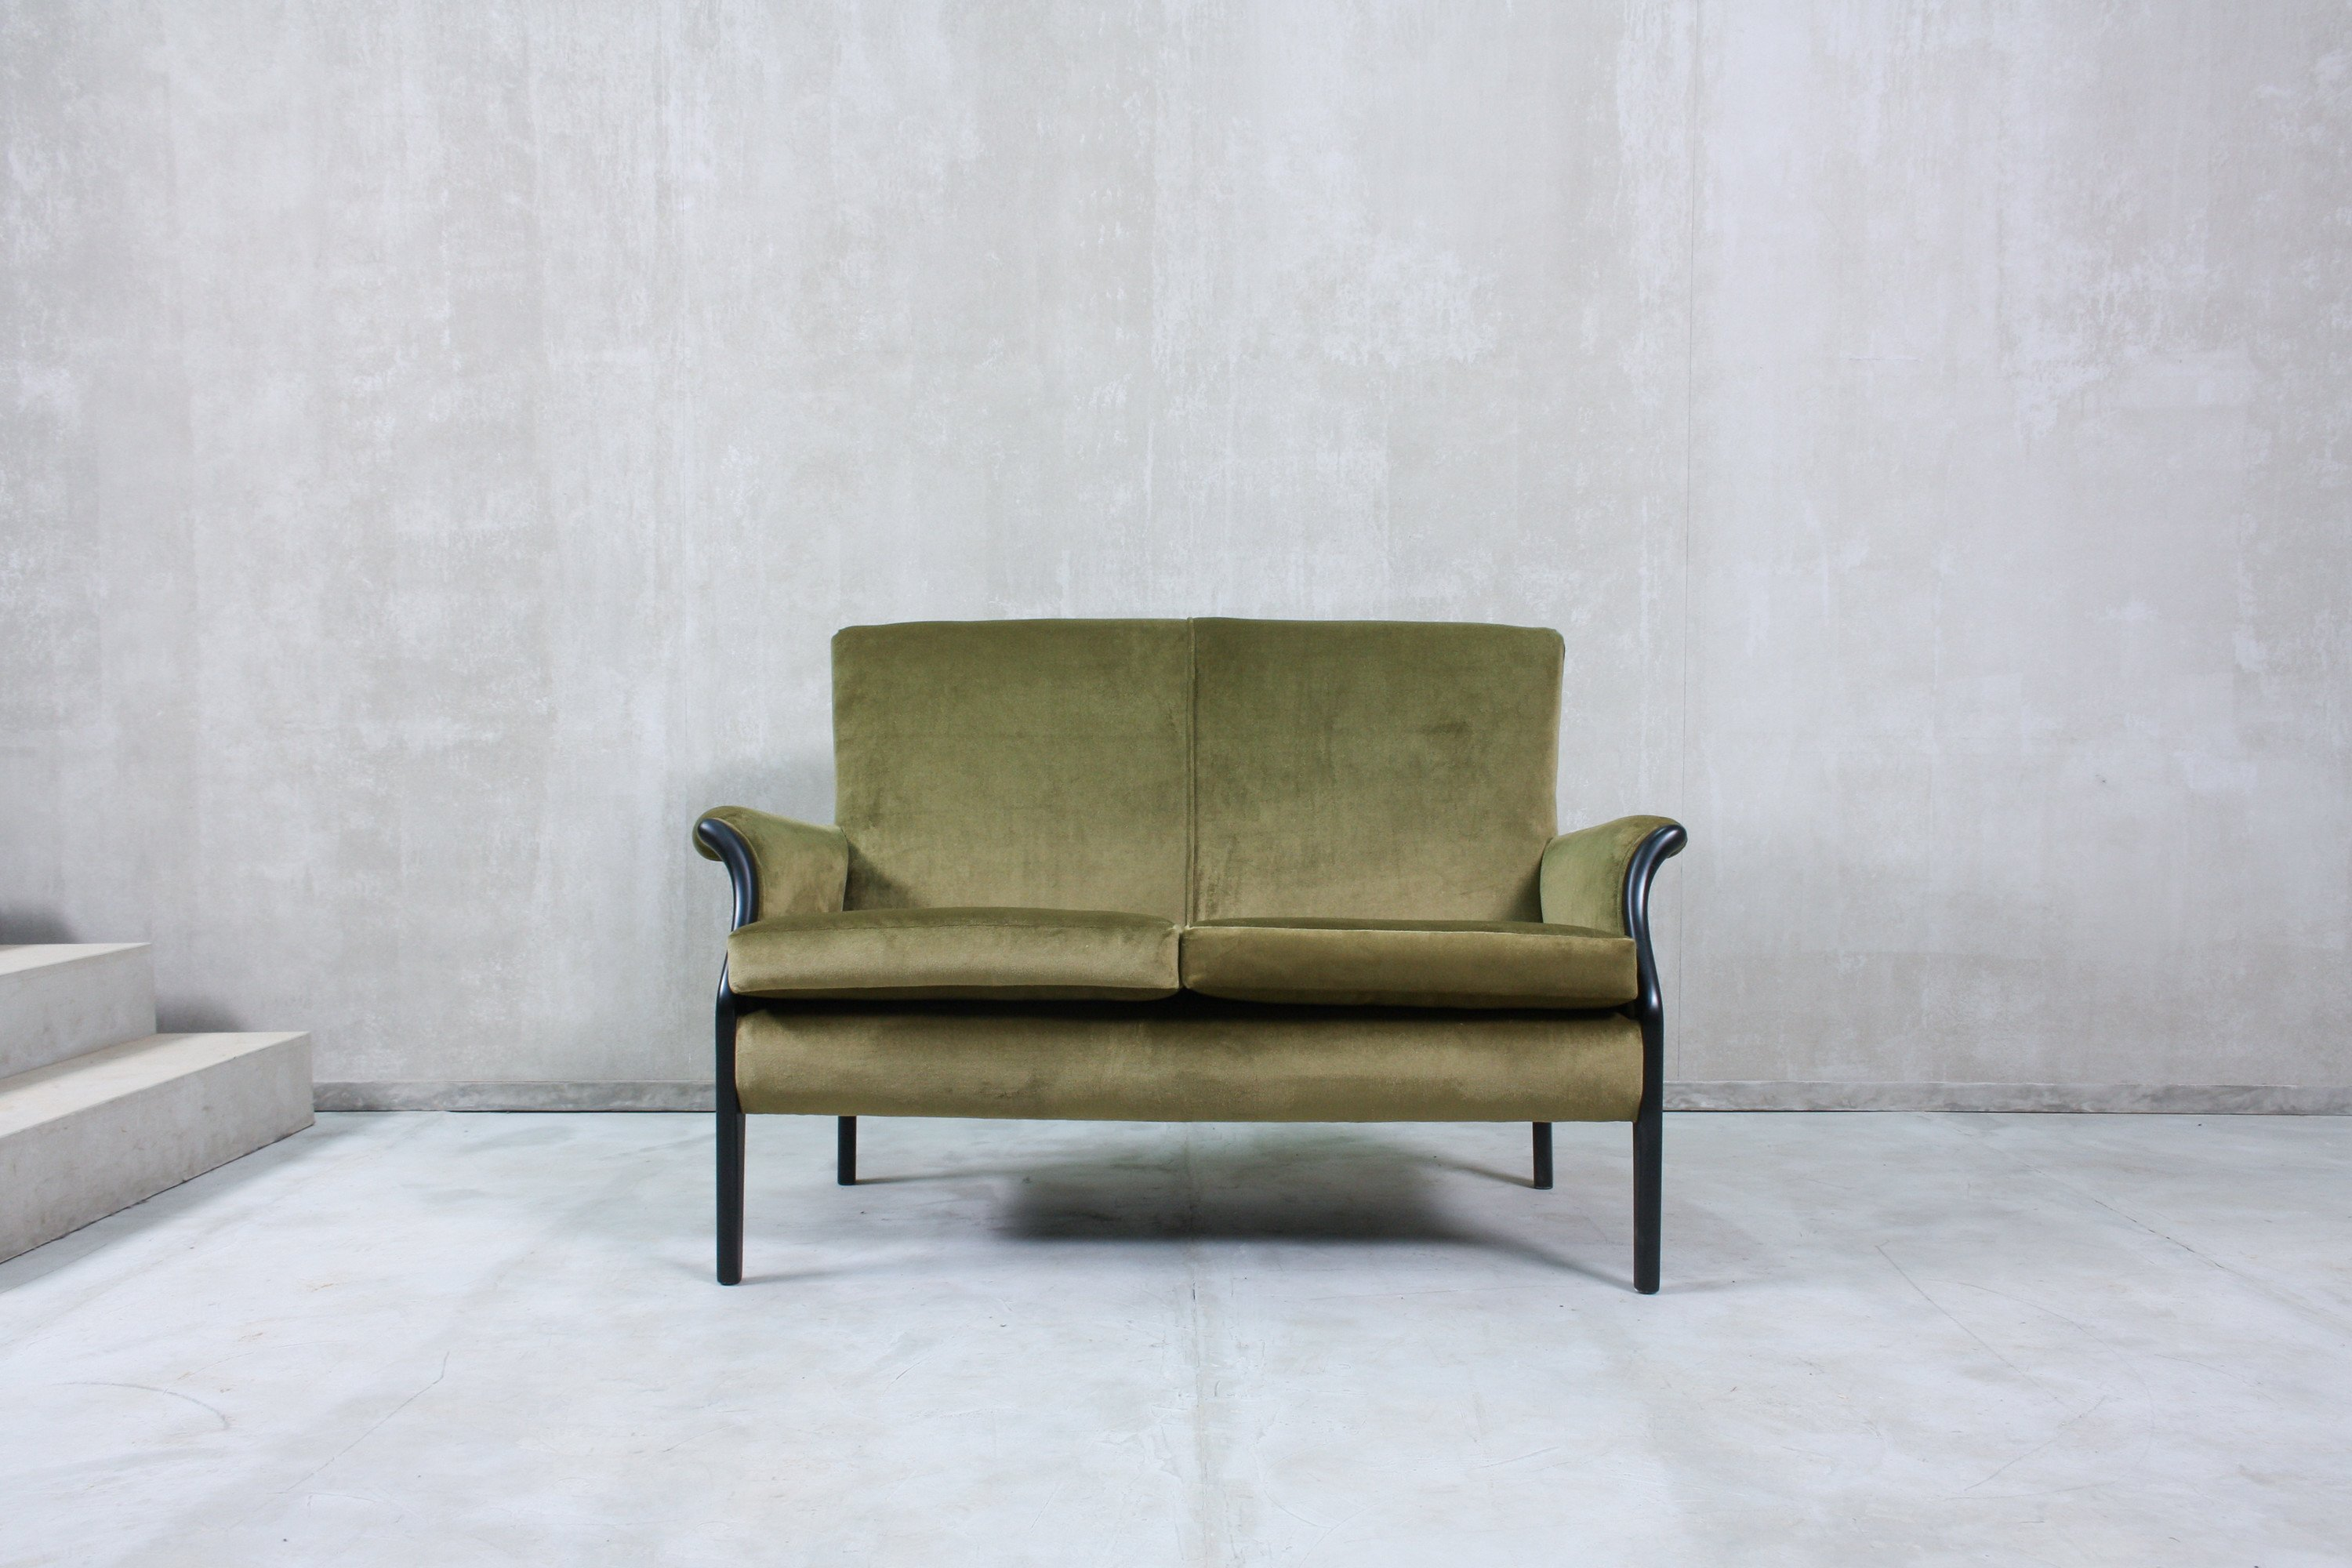 Sofa, Parker Knoll, United Kingdom, 1960s - 497966 - photo